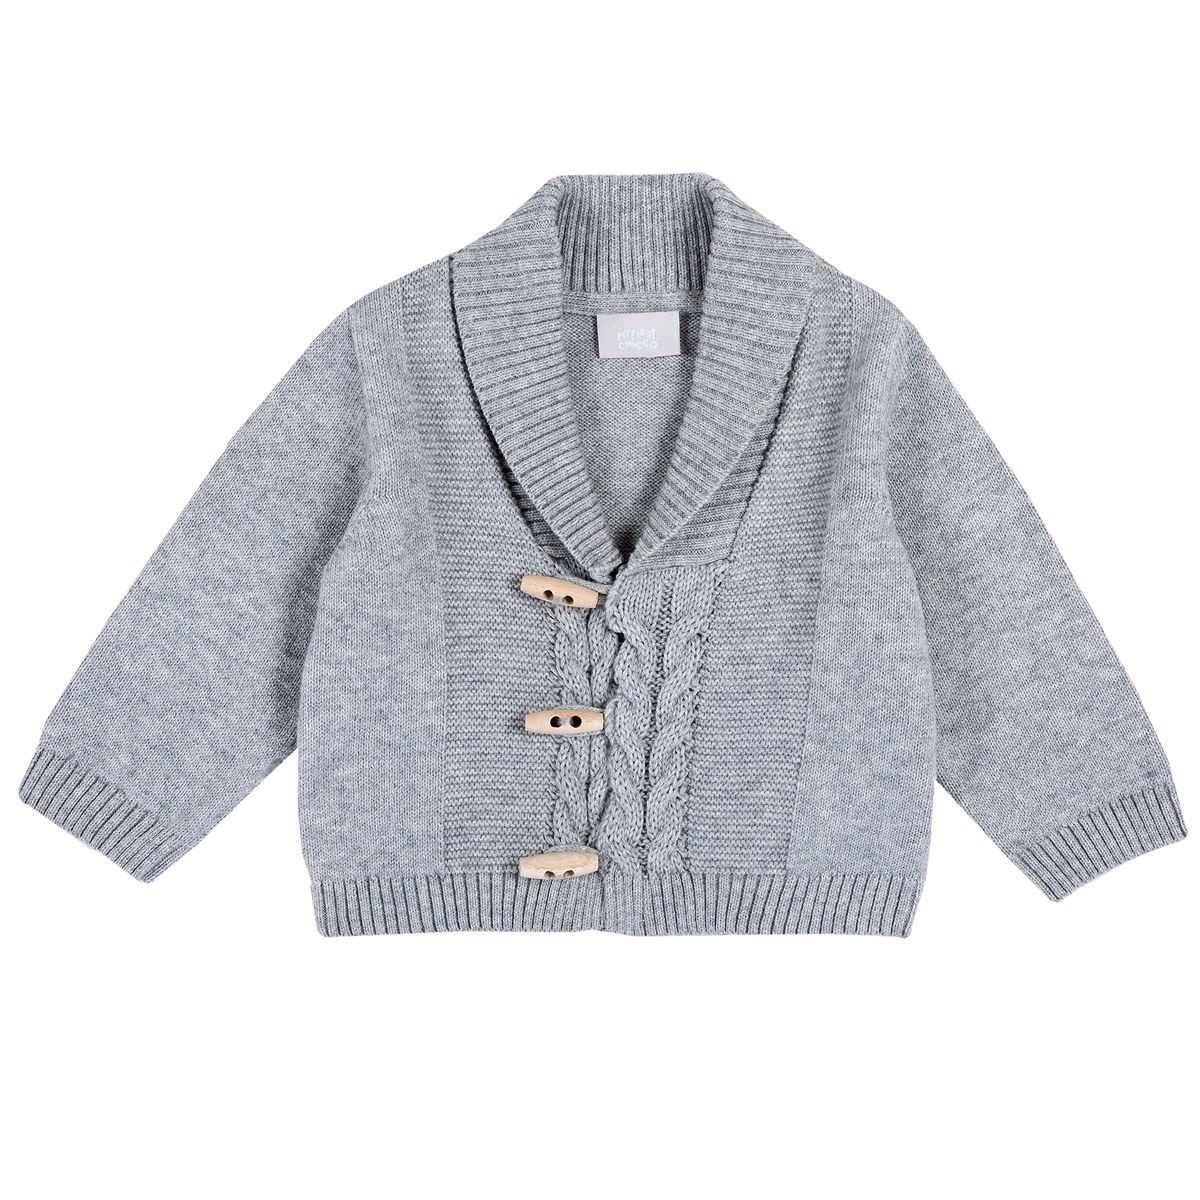 Cardigan copii Chicco, tricotat, gri, 96927